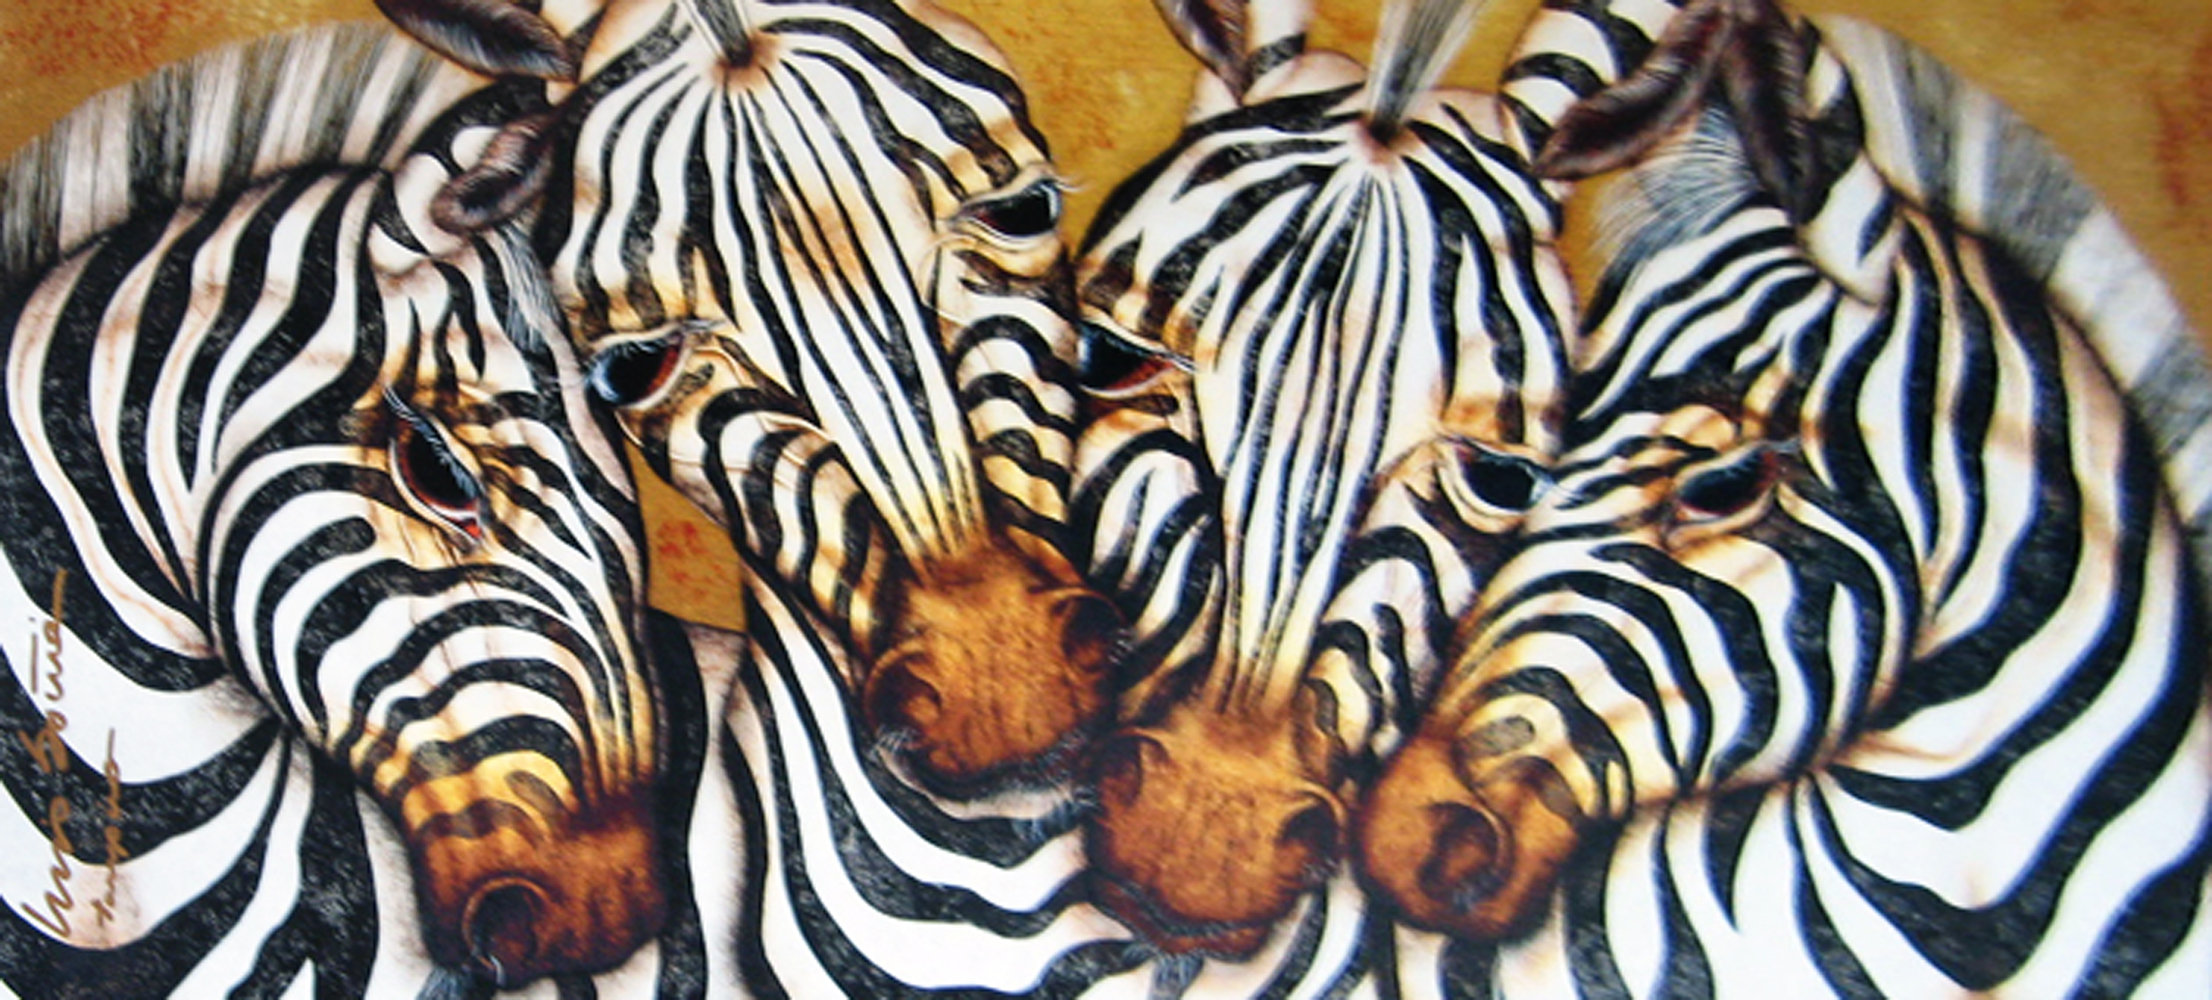 Captivating Harmony, Zebra 2005